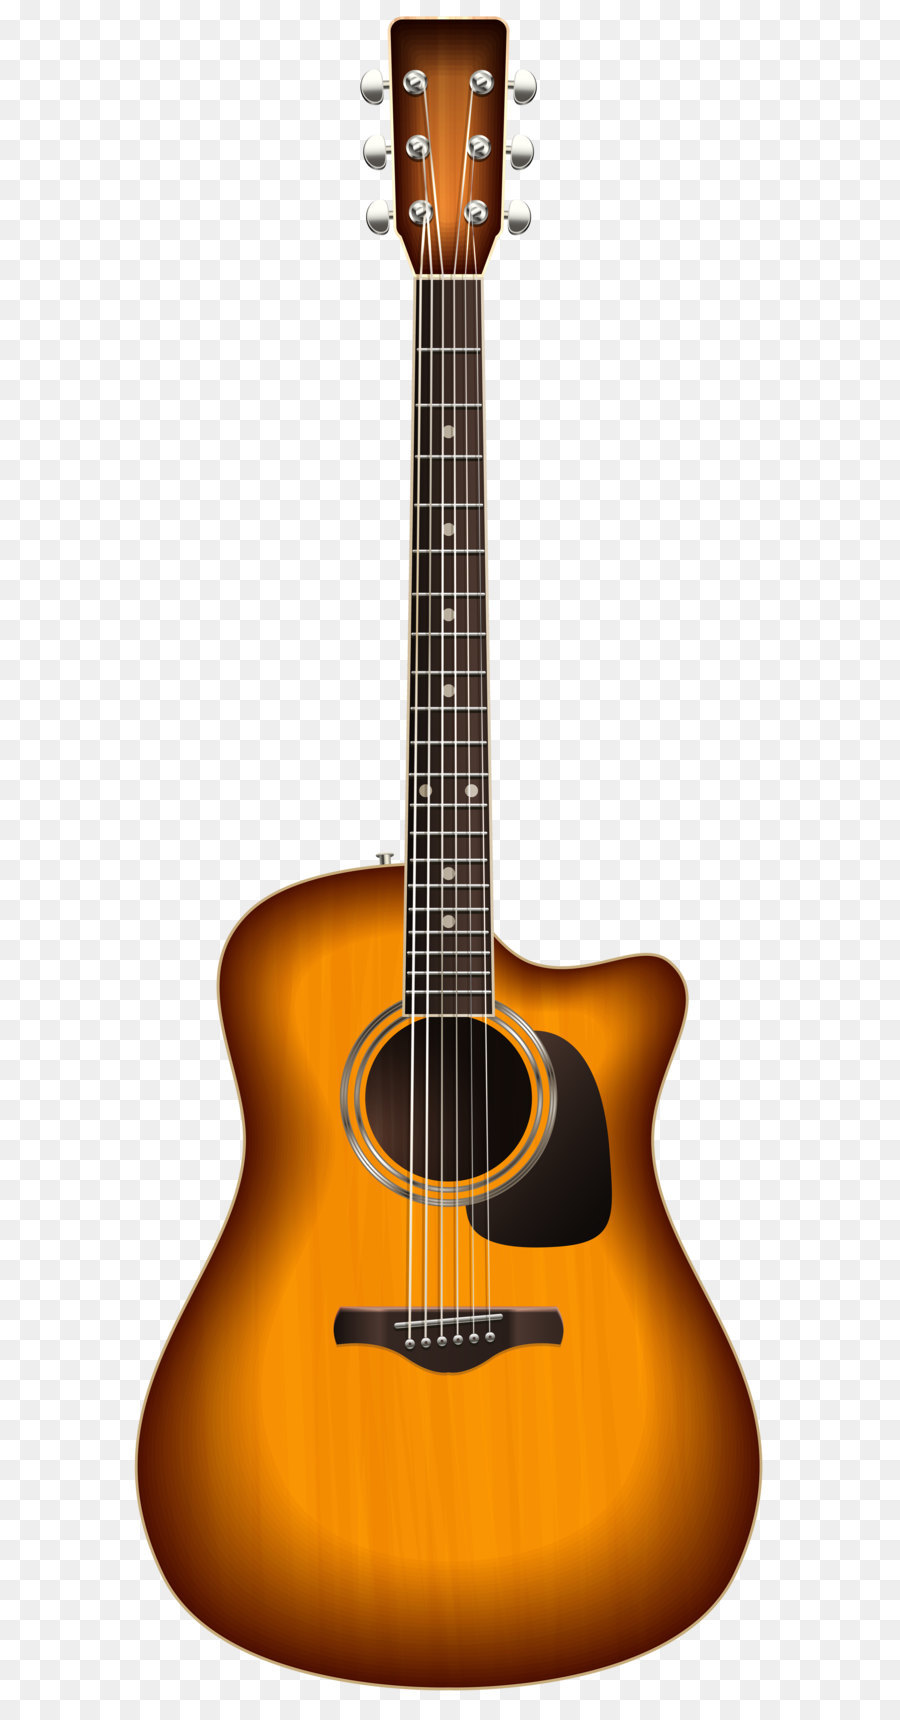 acoustic guitar electric guitar clip art guitar png transparent rh kisspng com acoustic guitar music clipart acoustic guitar music clipart